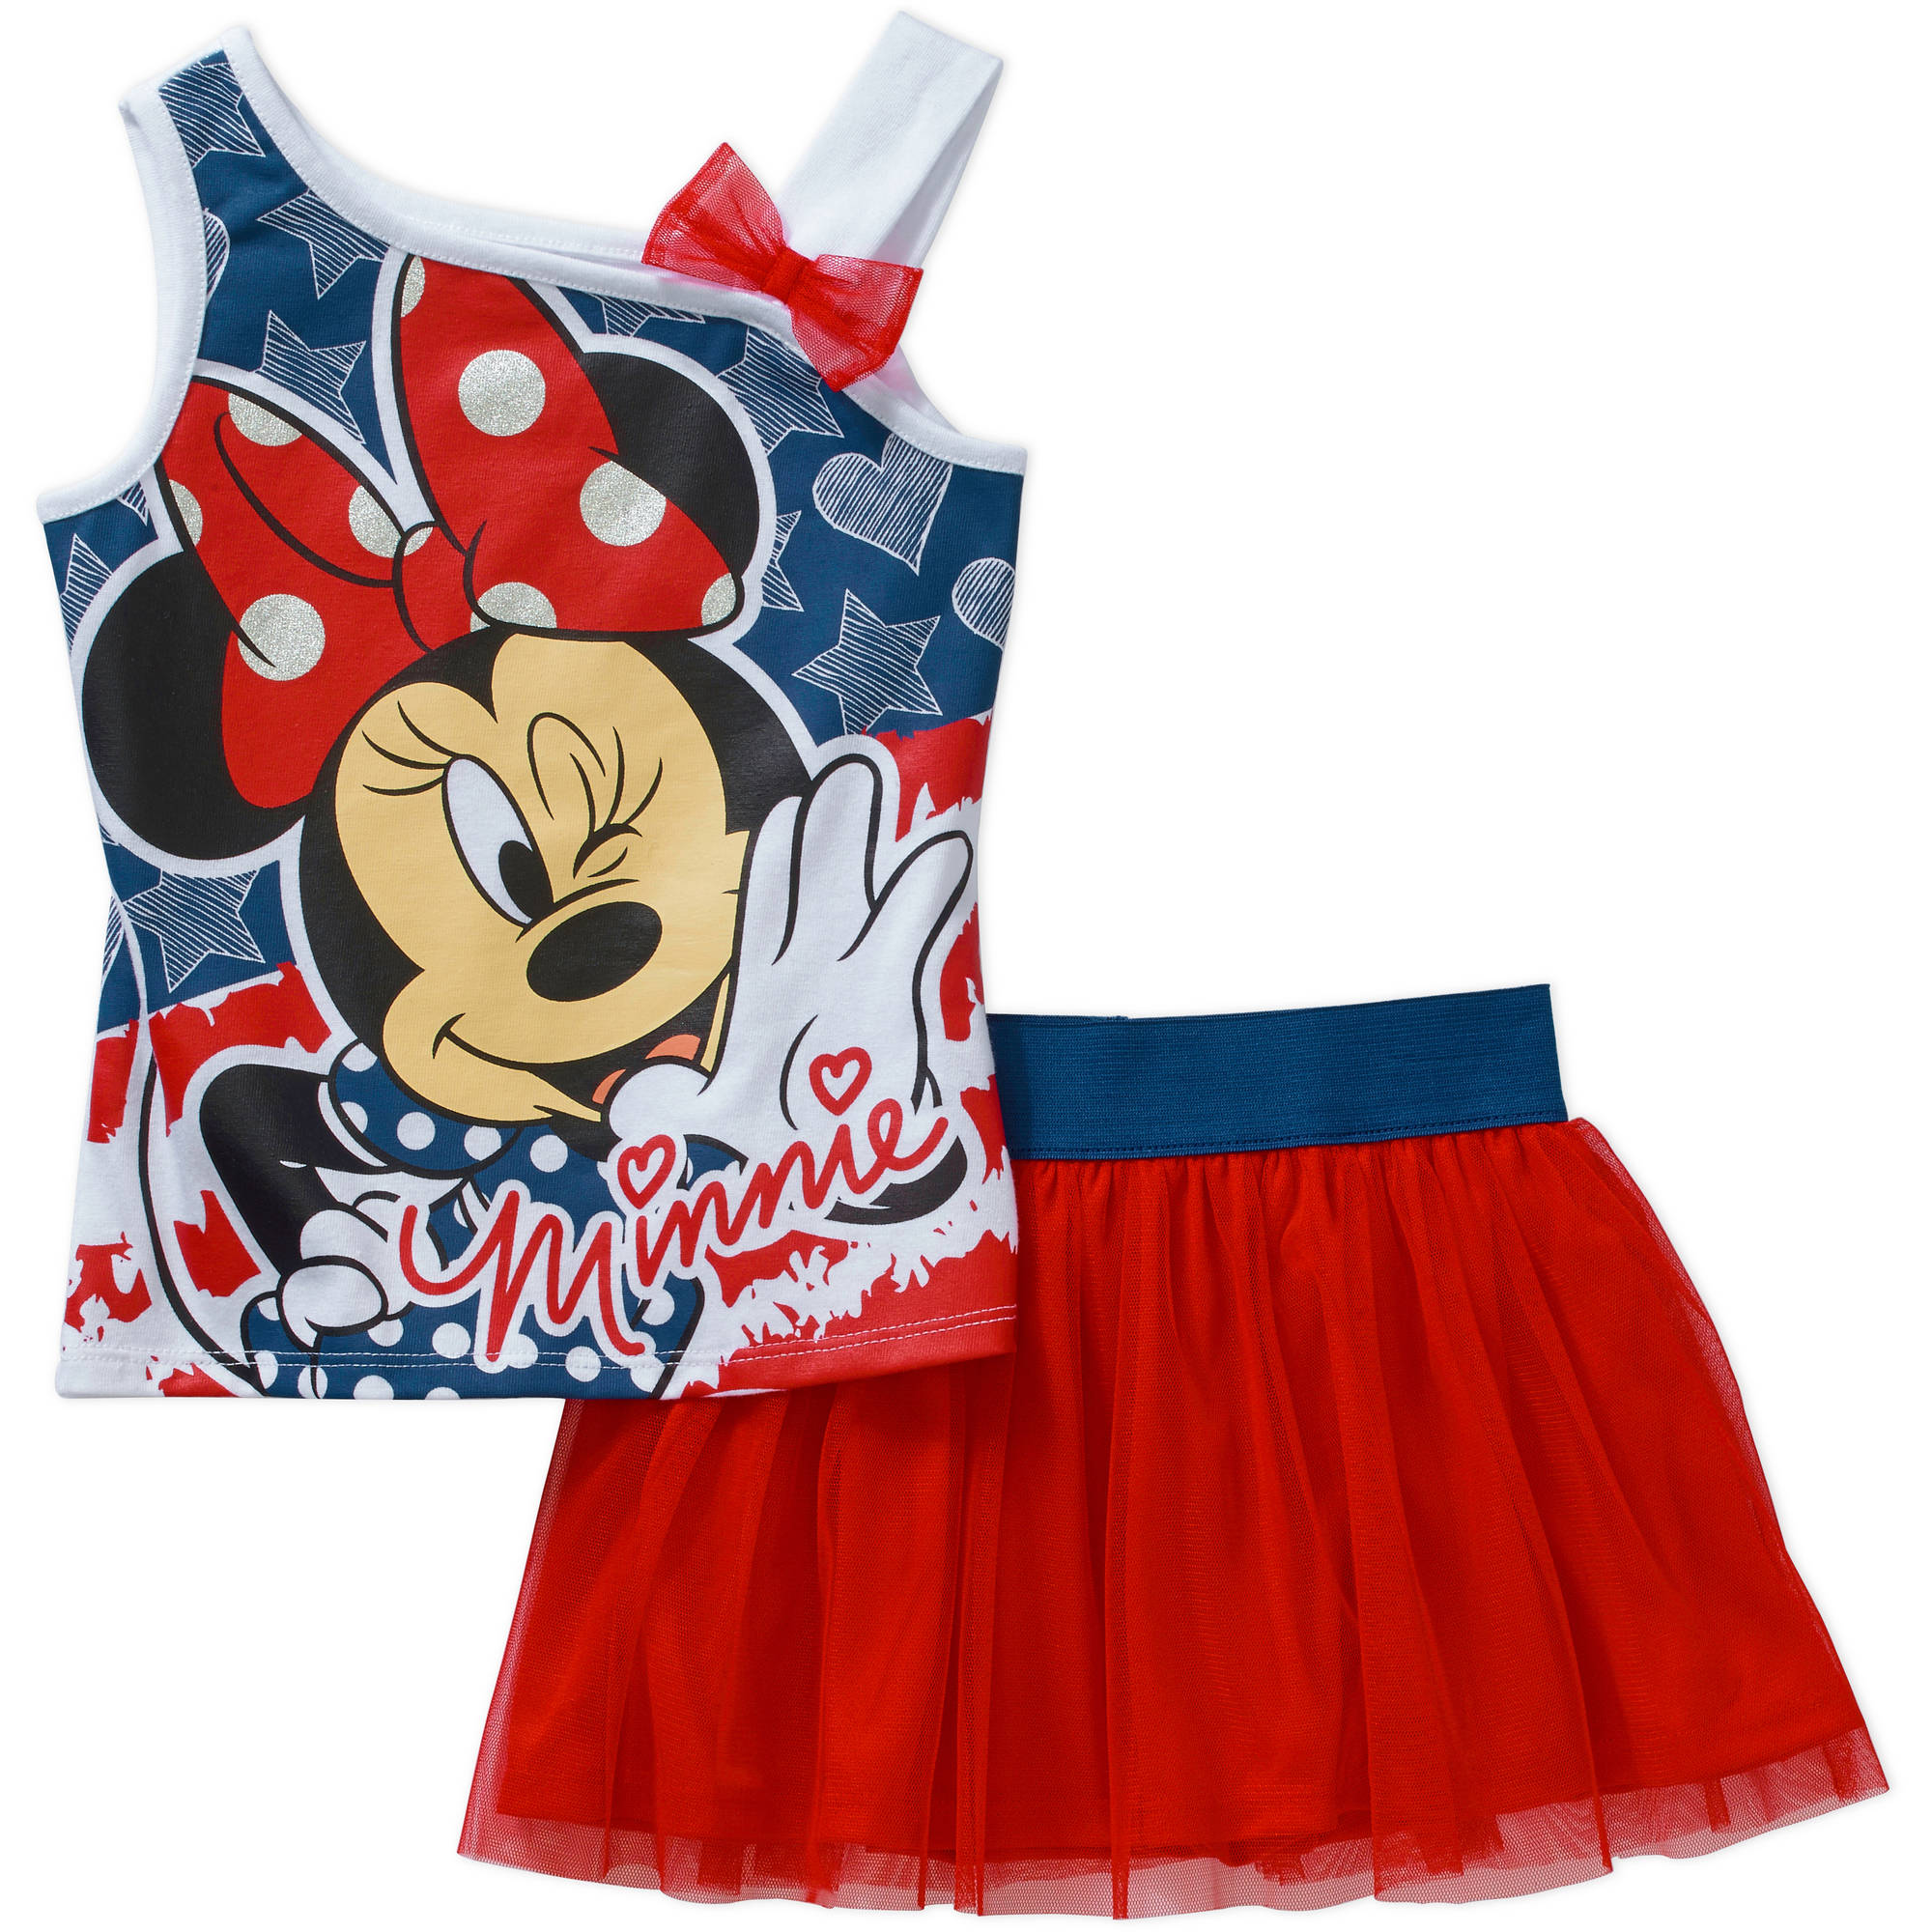 Minnie Mouse Baby Toddler Girl Tank and Skirt Outfit Set